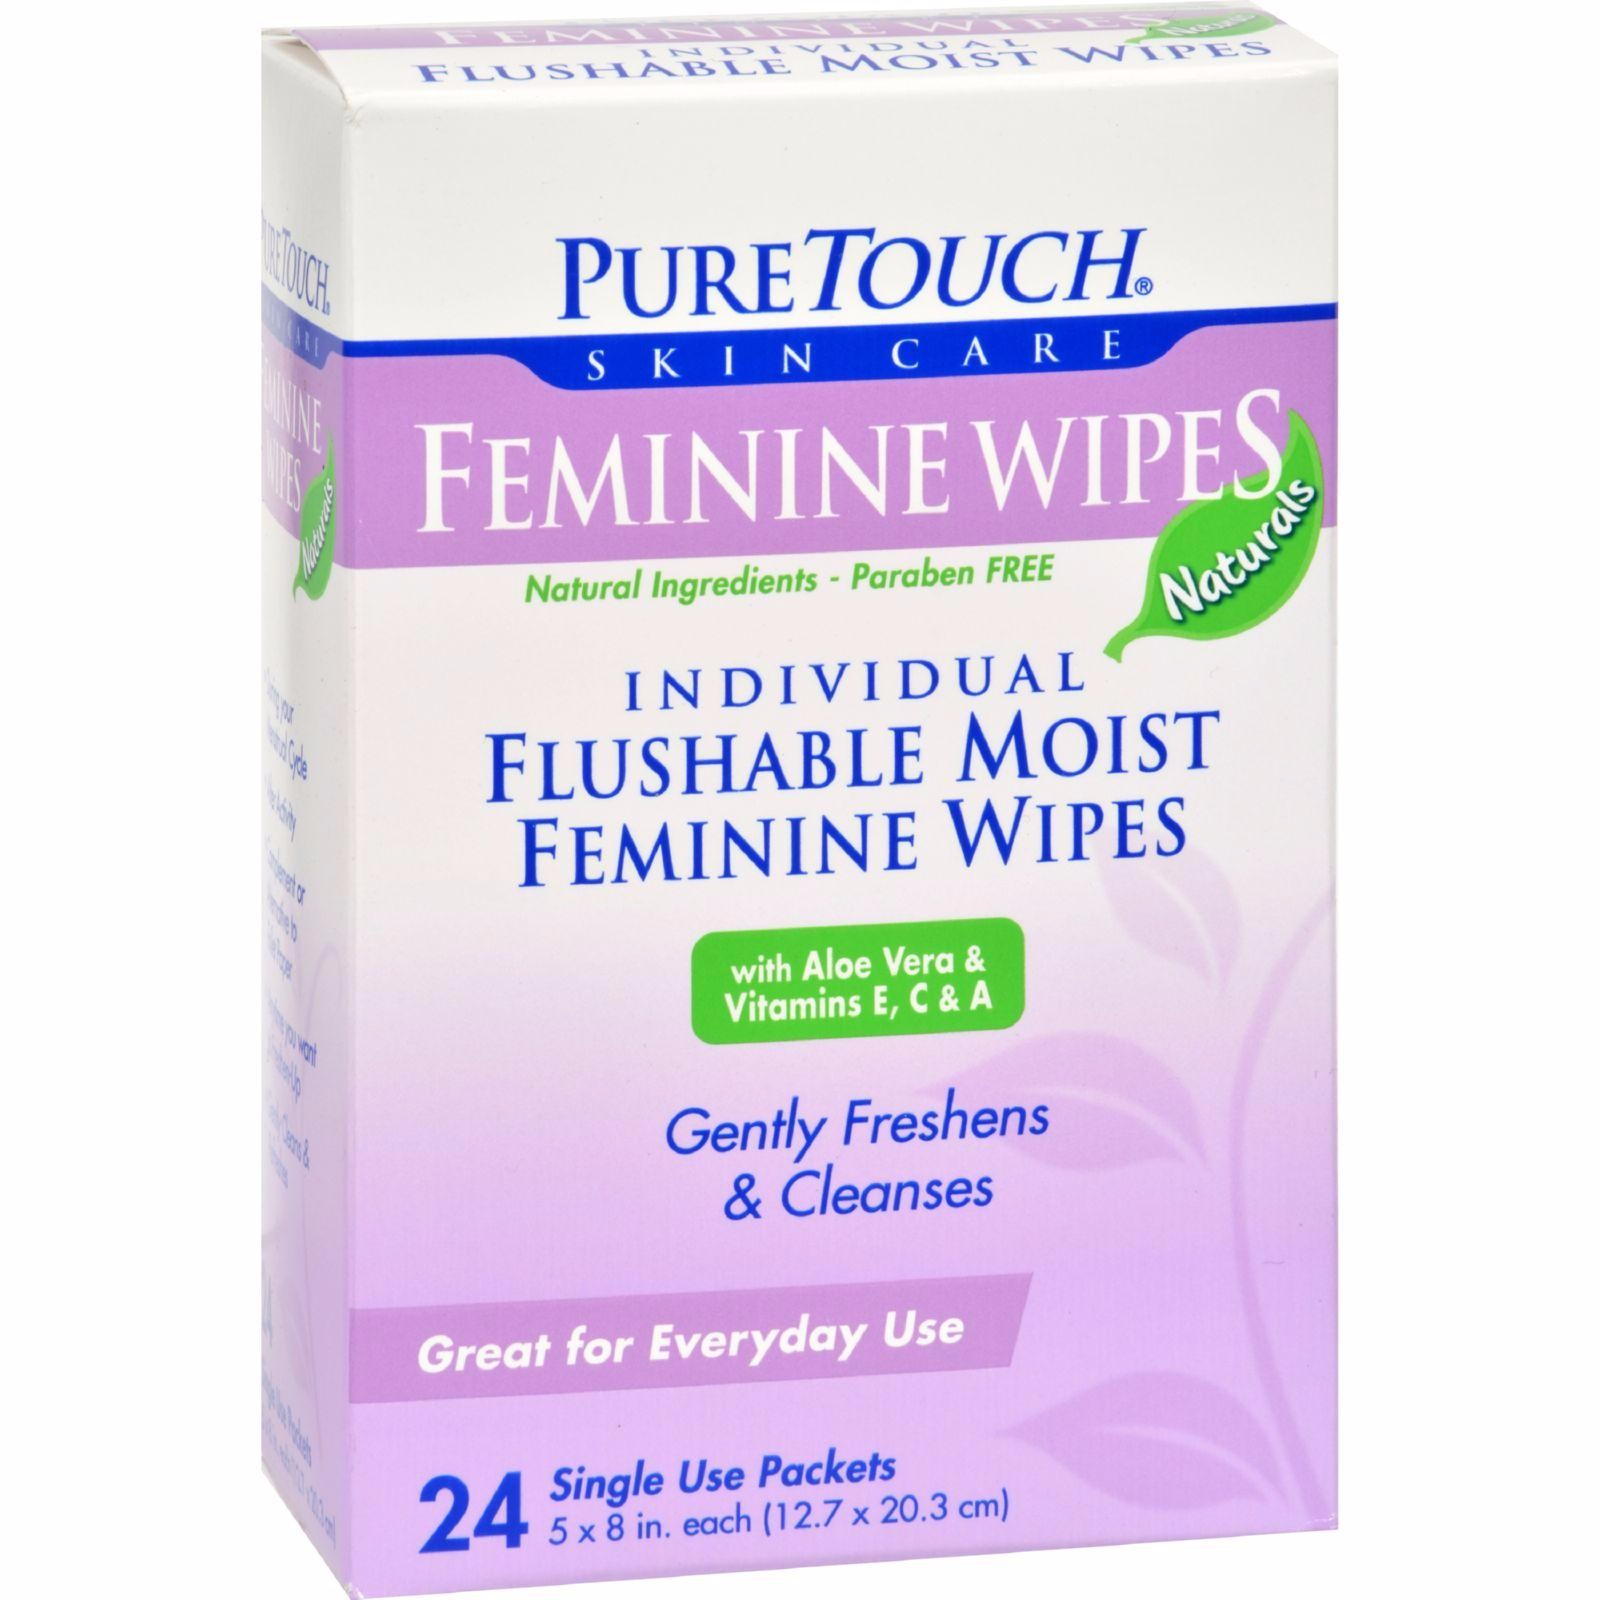 Puretouch Feminine Wipes Flushable - 24 Wipes - image 1 de 1